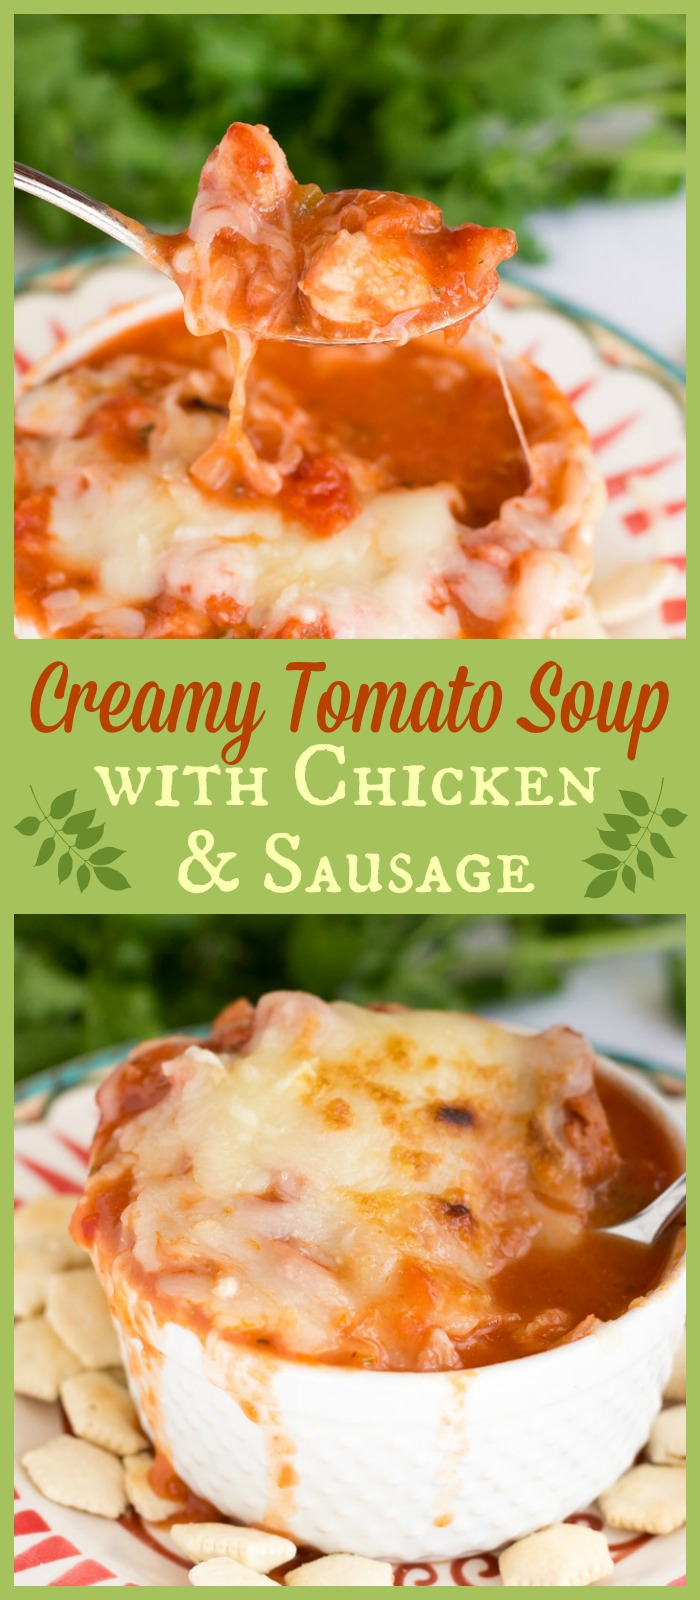 This hearty, satisfying creamy tomato soup is loaded with vegetables, tender chicken, and flavorful sausage. Perfect dinner for a cold night!